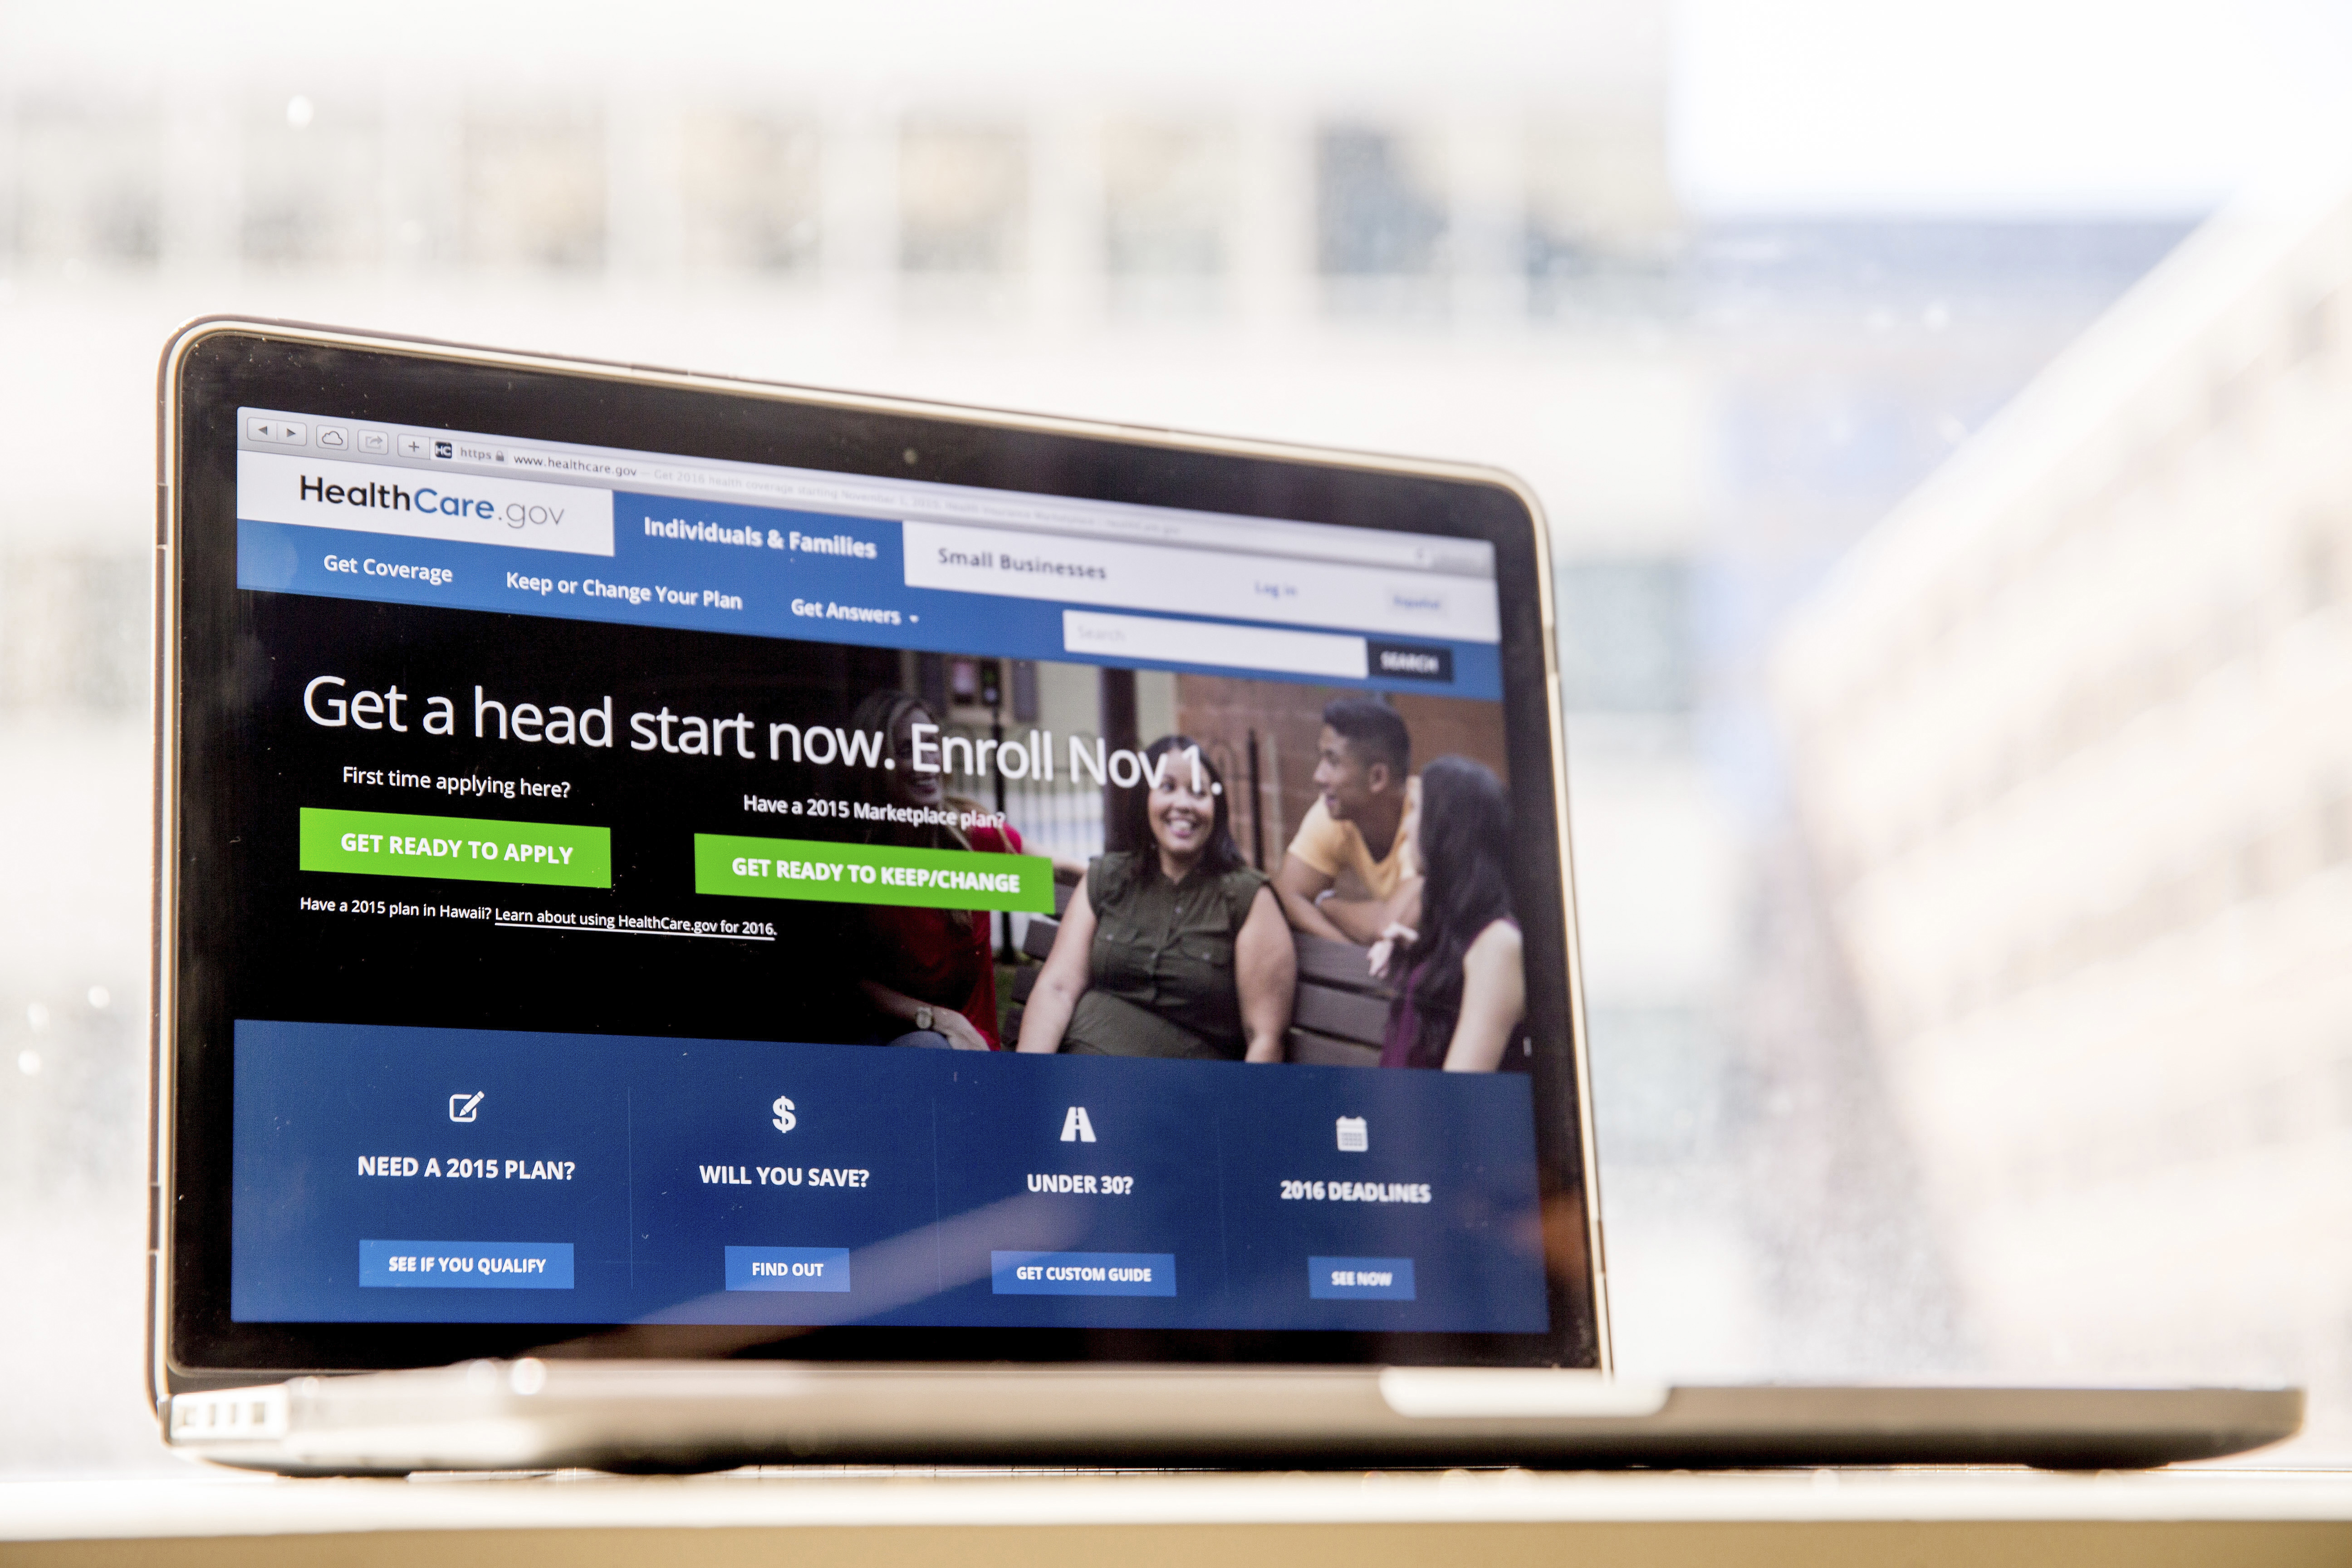 In this Oct. 6, 2015, file photo, the HealthCare.gov website, where people can buy health insurance, is displayed on a laptop screen in Washington. The Obama administration says a little over 1 million people renewed coverage or signed up for the first time through HealthCare.gov around the start of open enrollment.